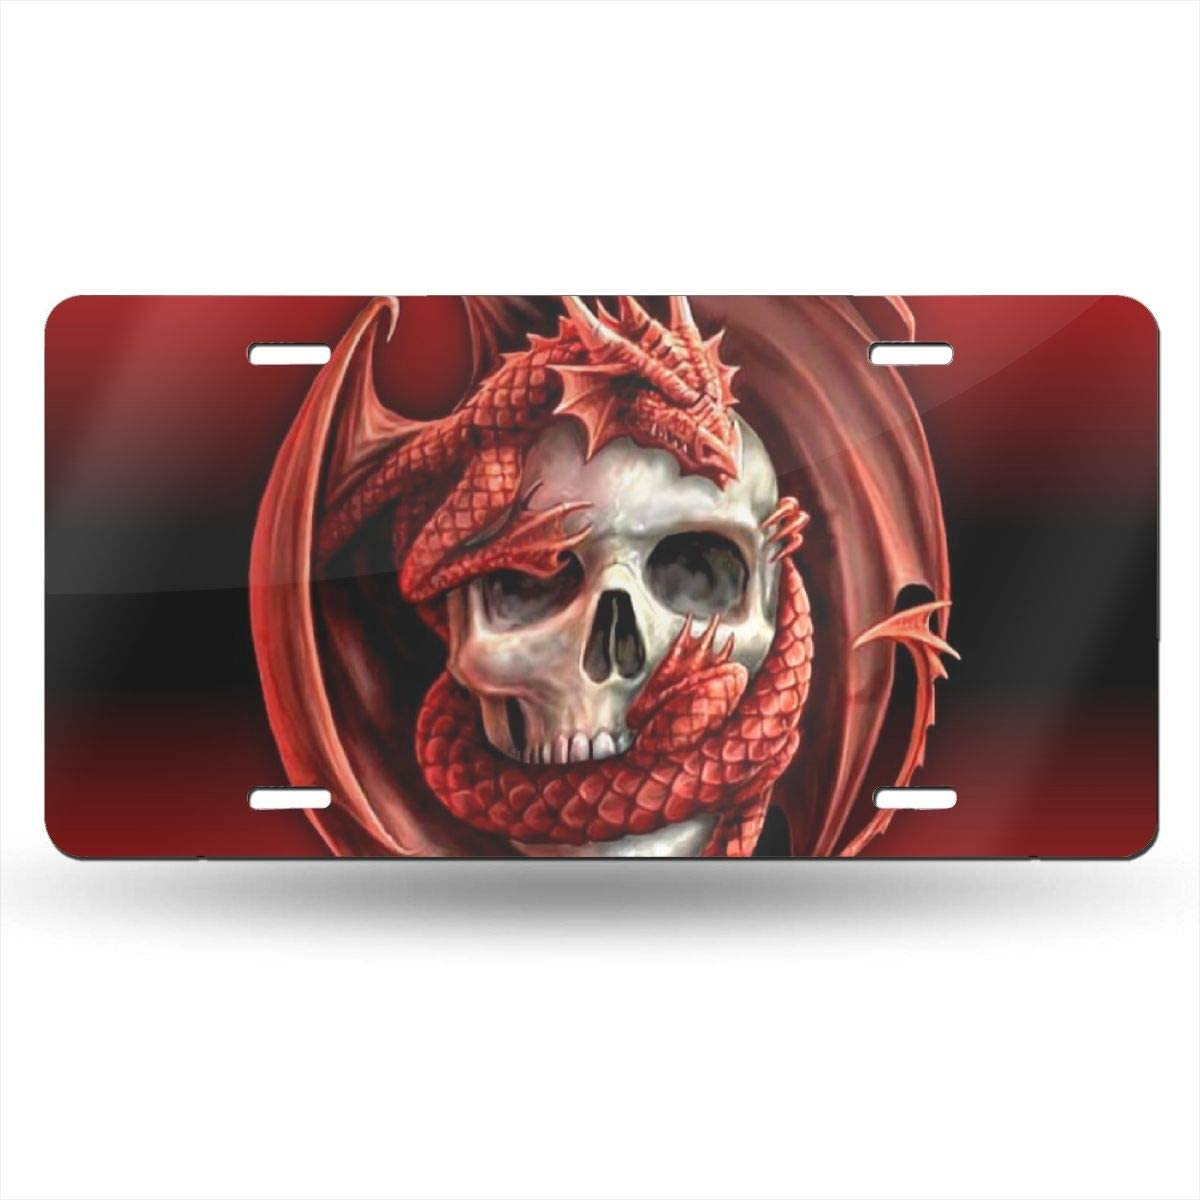 Miniisoul Wall Decoration License Plate Personalized Front License Plate Skull Dragon Customized USA Car Tag 6 X 12 Aluminum License Plate